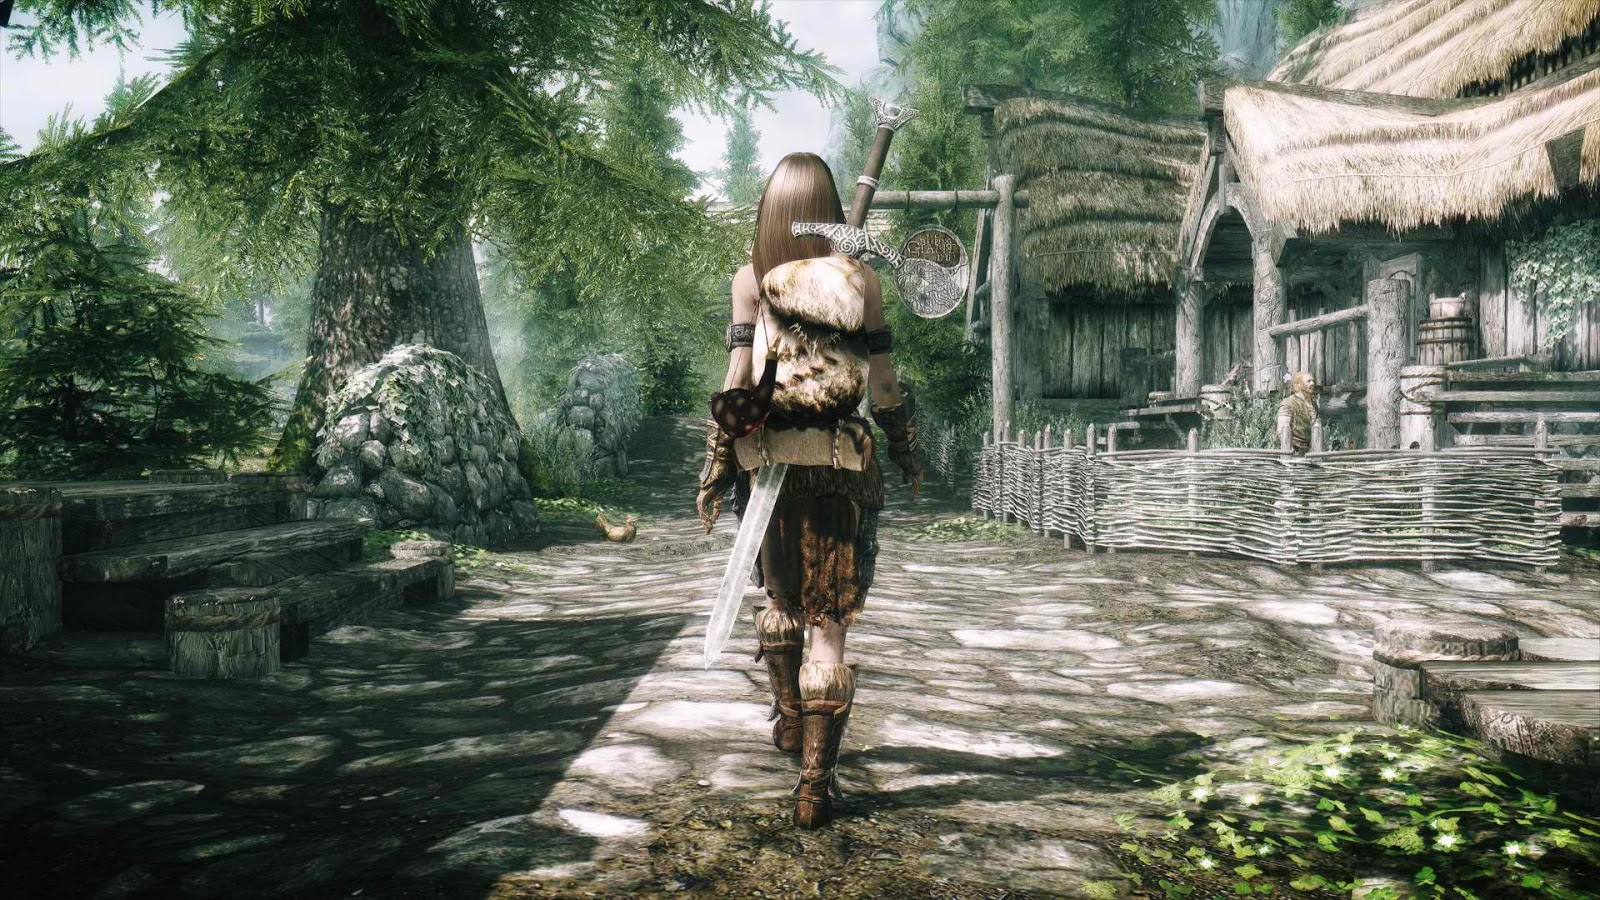 50 Hd Skyrim Wallpapers 4k 2019 Topxbestlist